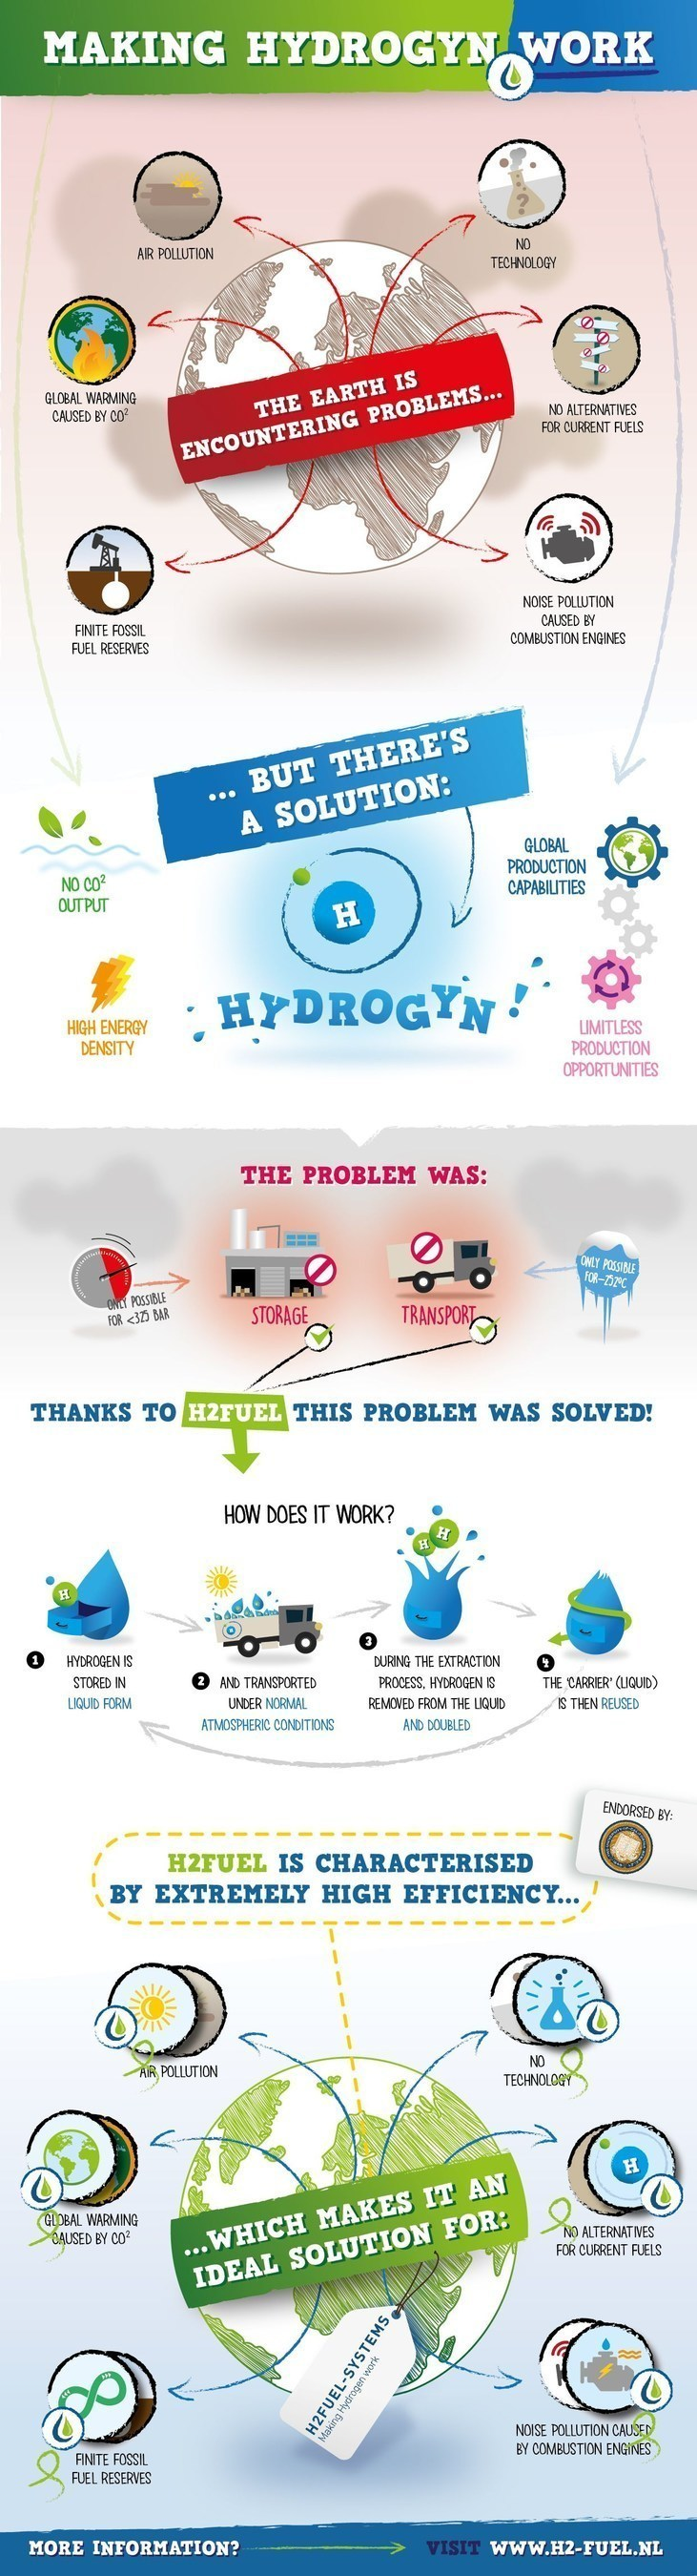 The hydrogen economy starts today. H2Fuel makes it possible to use hydrogen to convert combustion engines to ...